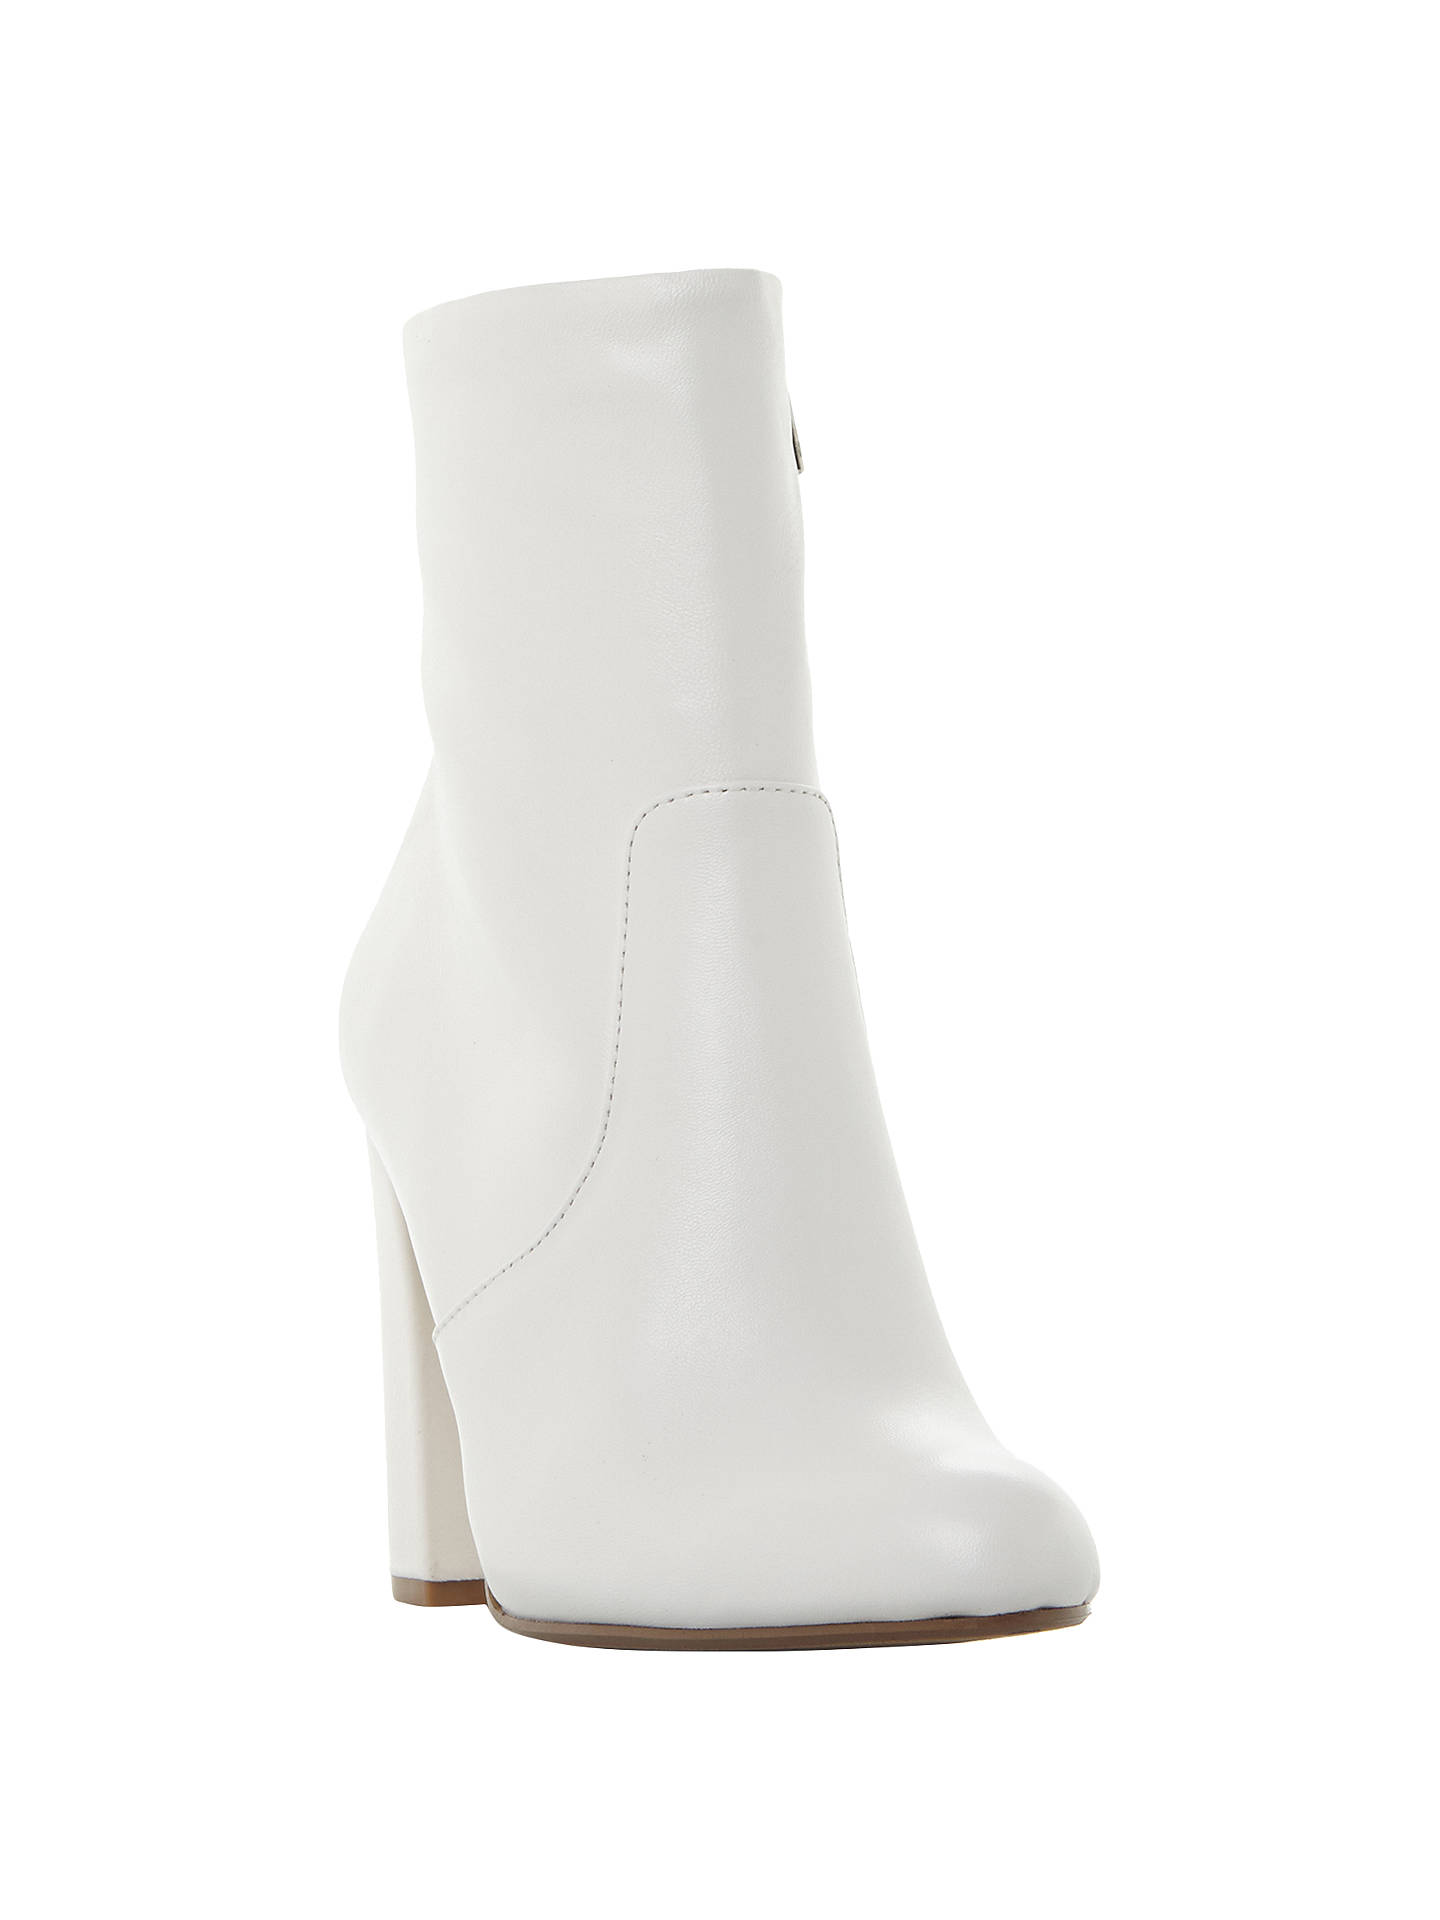 7625acf704a Buy Steve Madden Editor Block Heeled Ankle Sock Boots